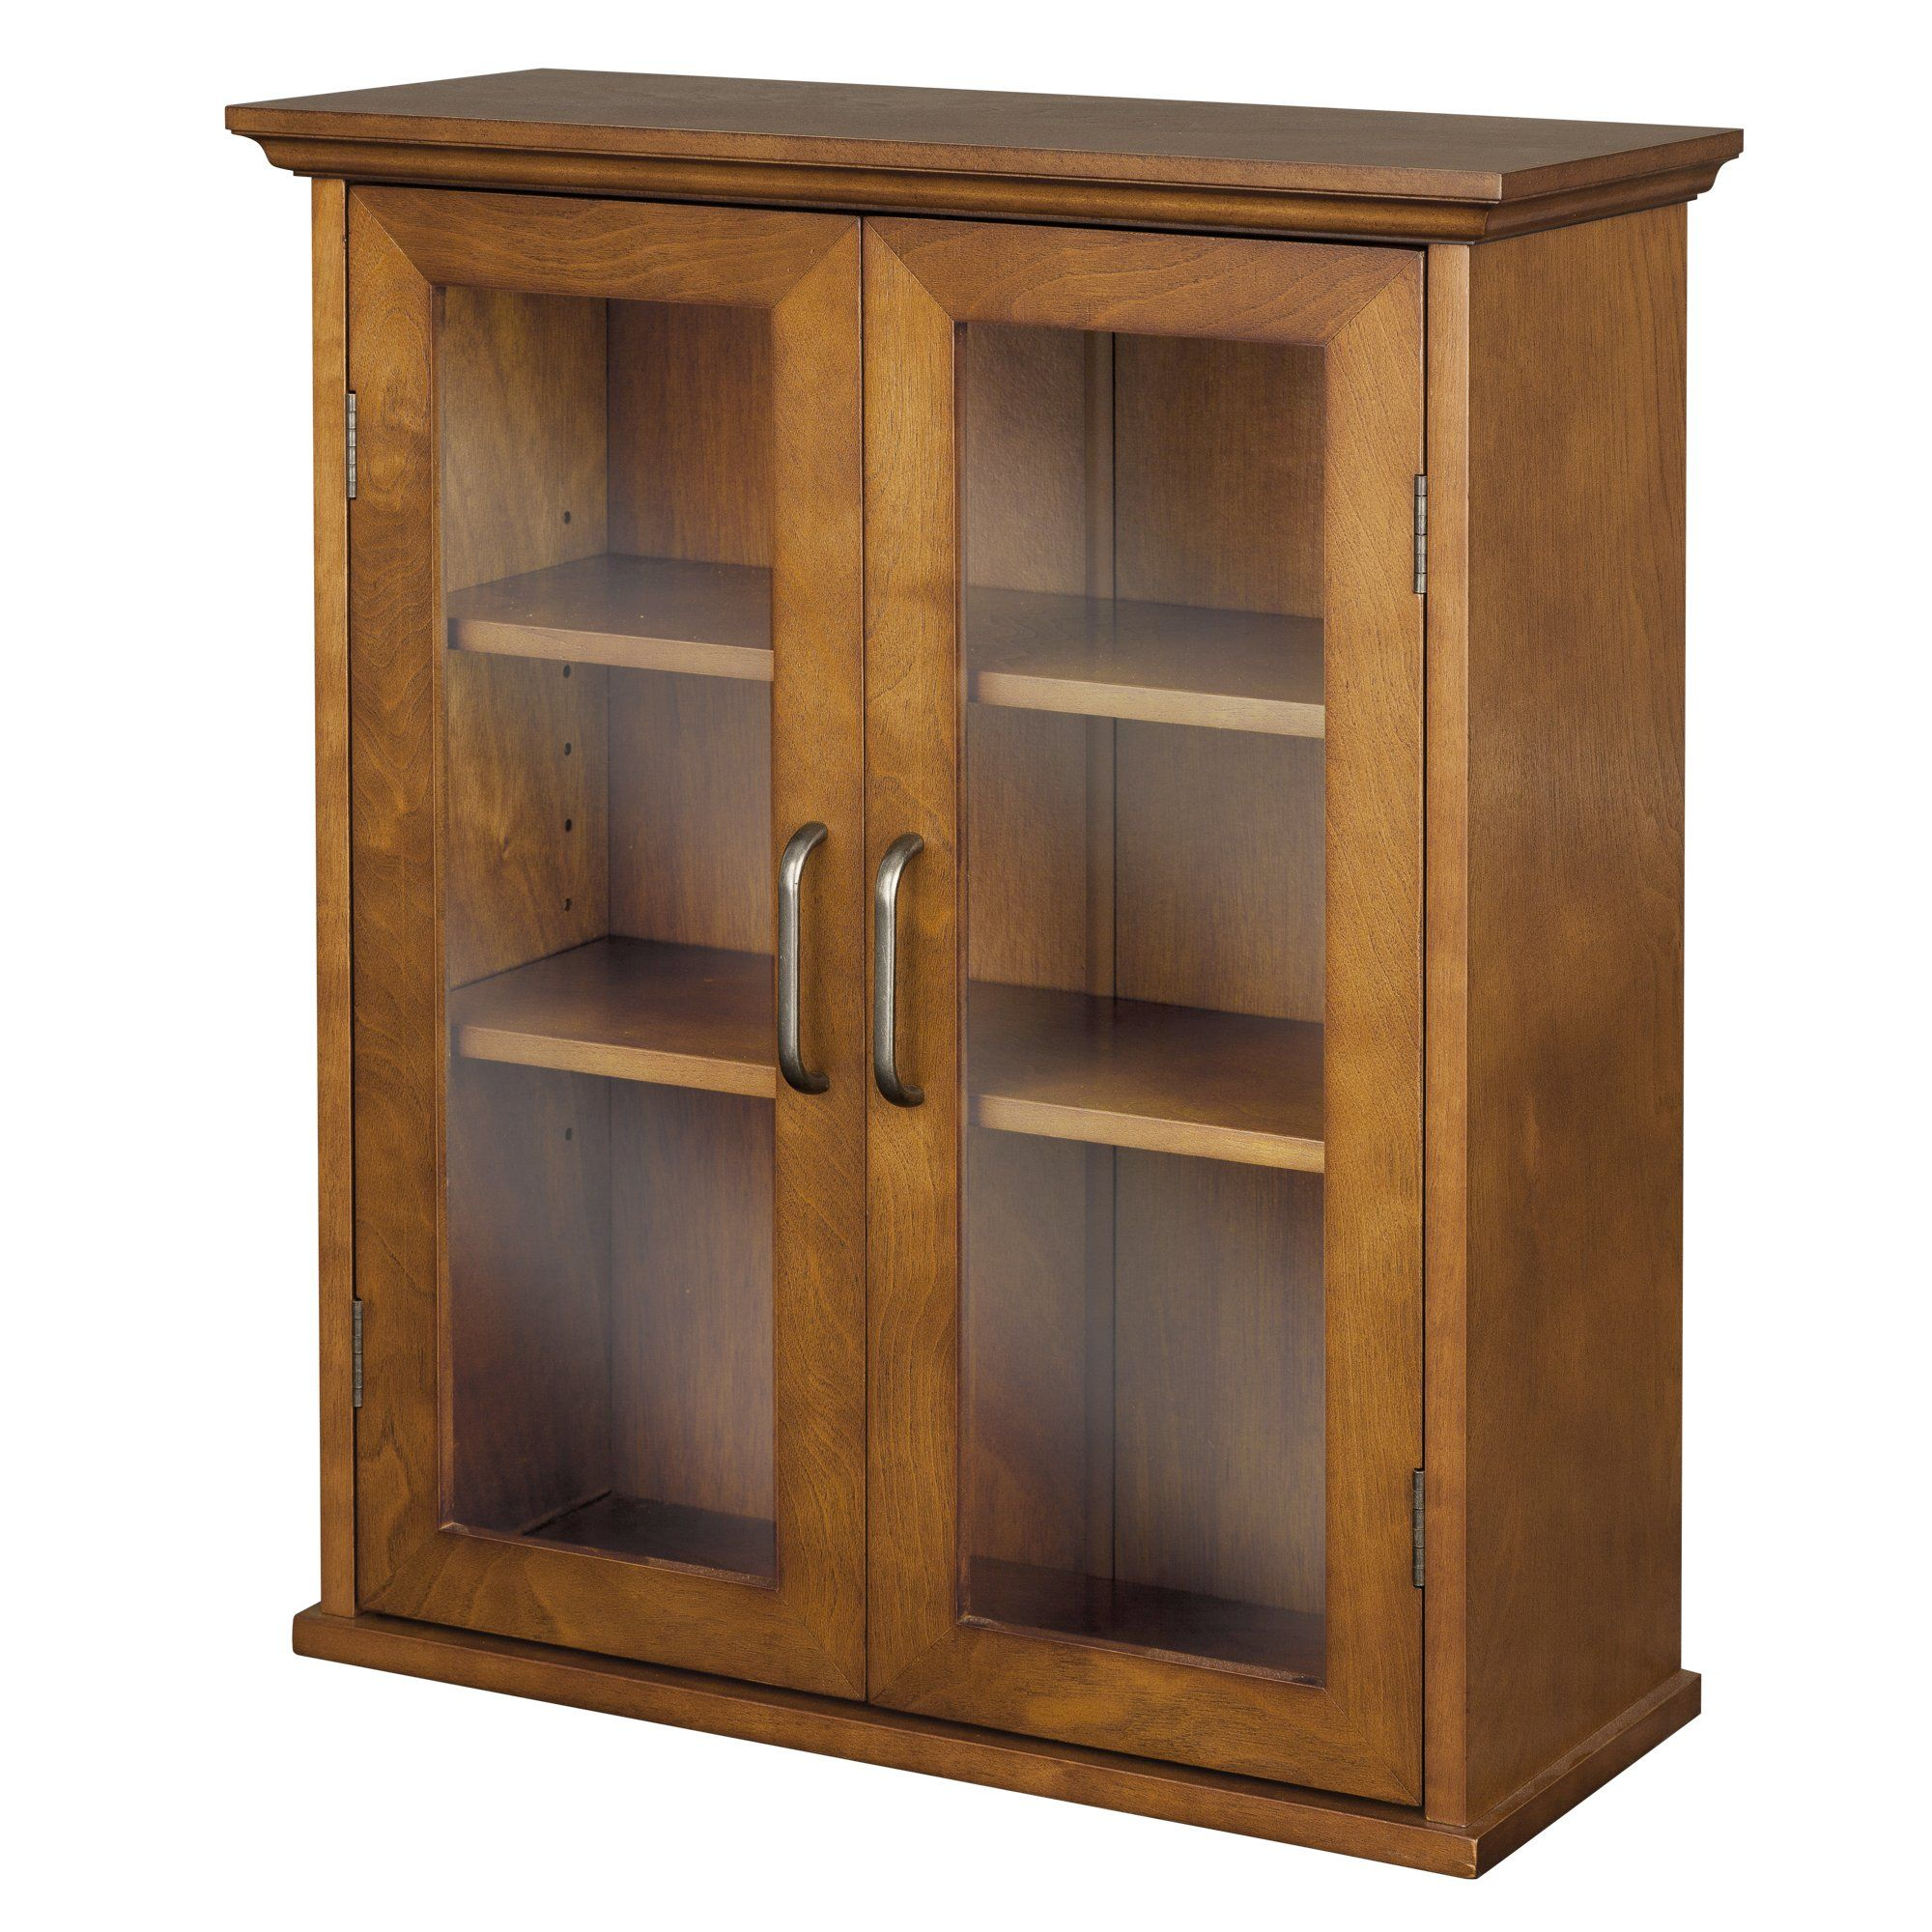 Elegant Home Fashion Anna Wall Cabinet With 2door Visit The